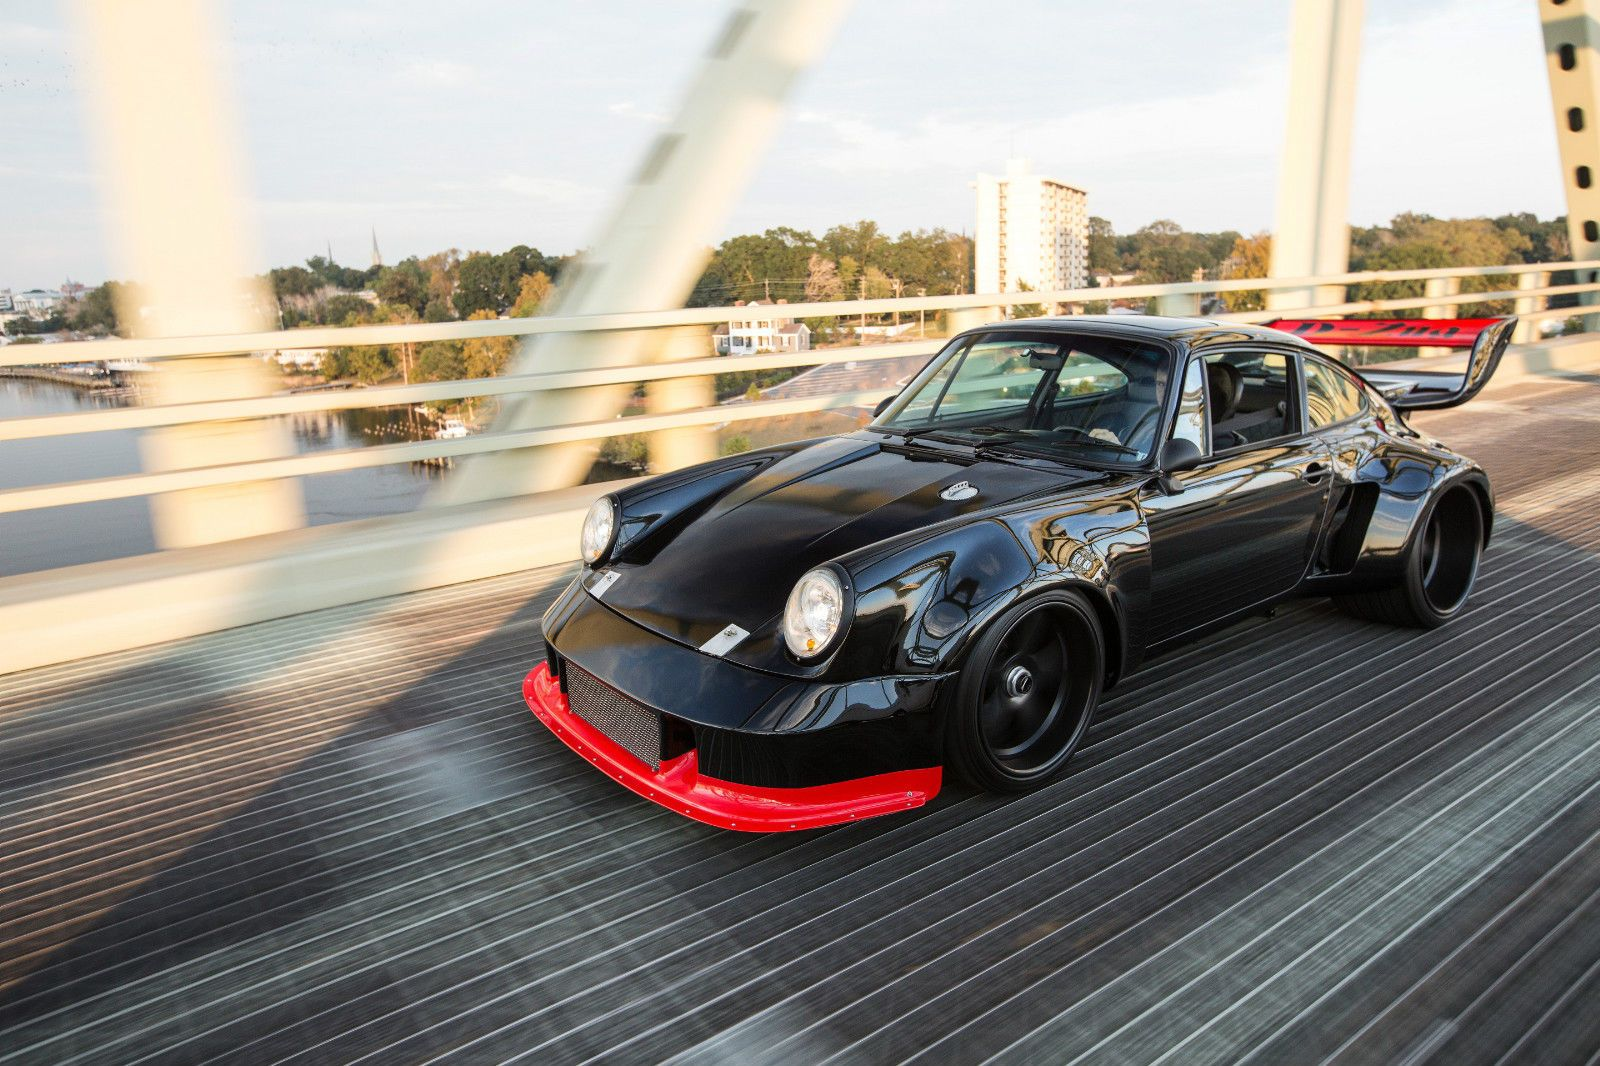 This Modified Porsche 930 Turbo Is What Hardcore Dreams Are Made ...